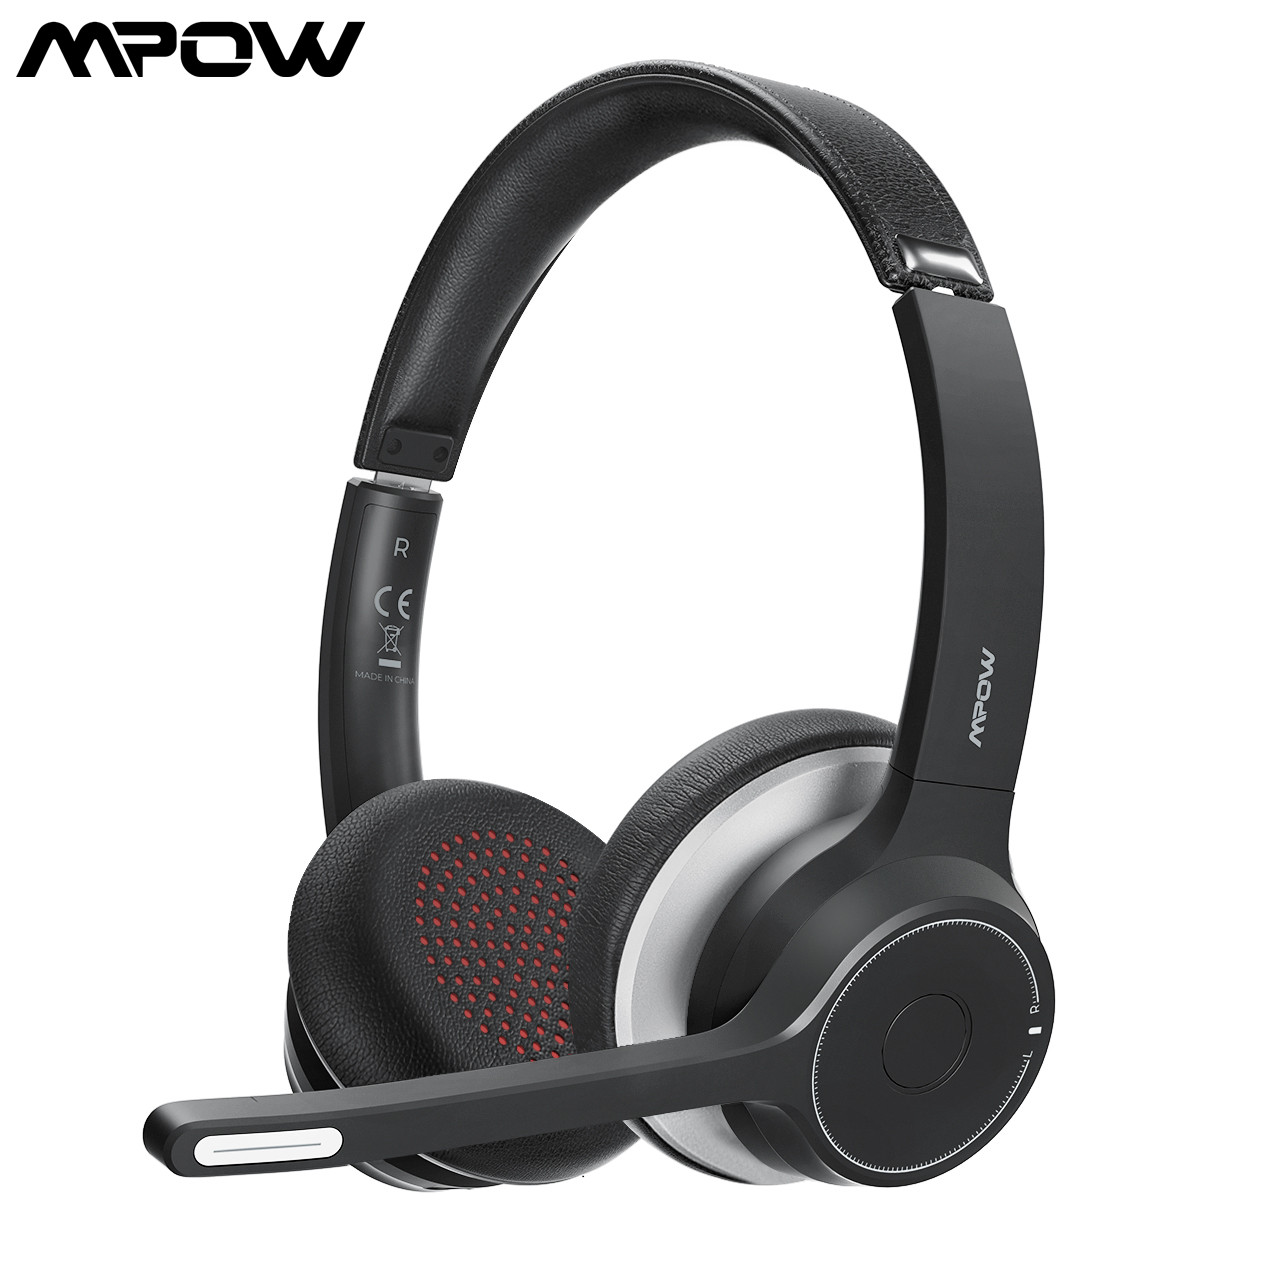 MPOW HC5 Wireless Bluetooth 5 0 Headphones With Mic CVC 8 0 Noise Cancelling Office Headset 22 Hours Life Earphones PC Phone